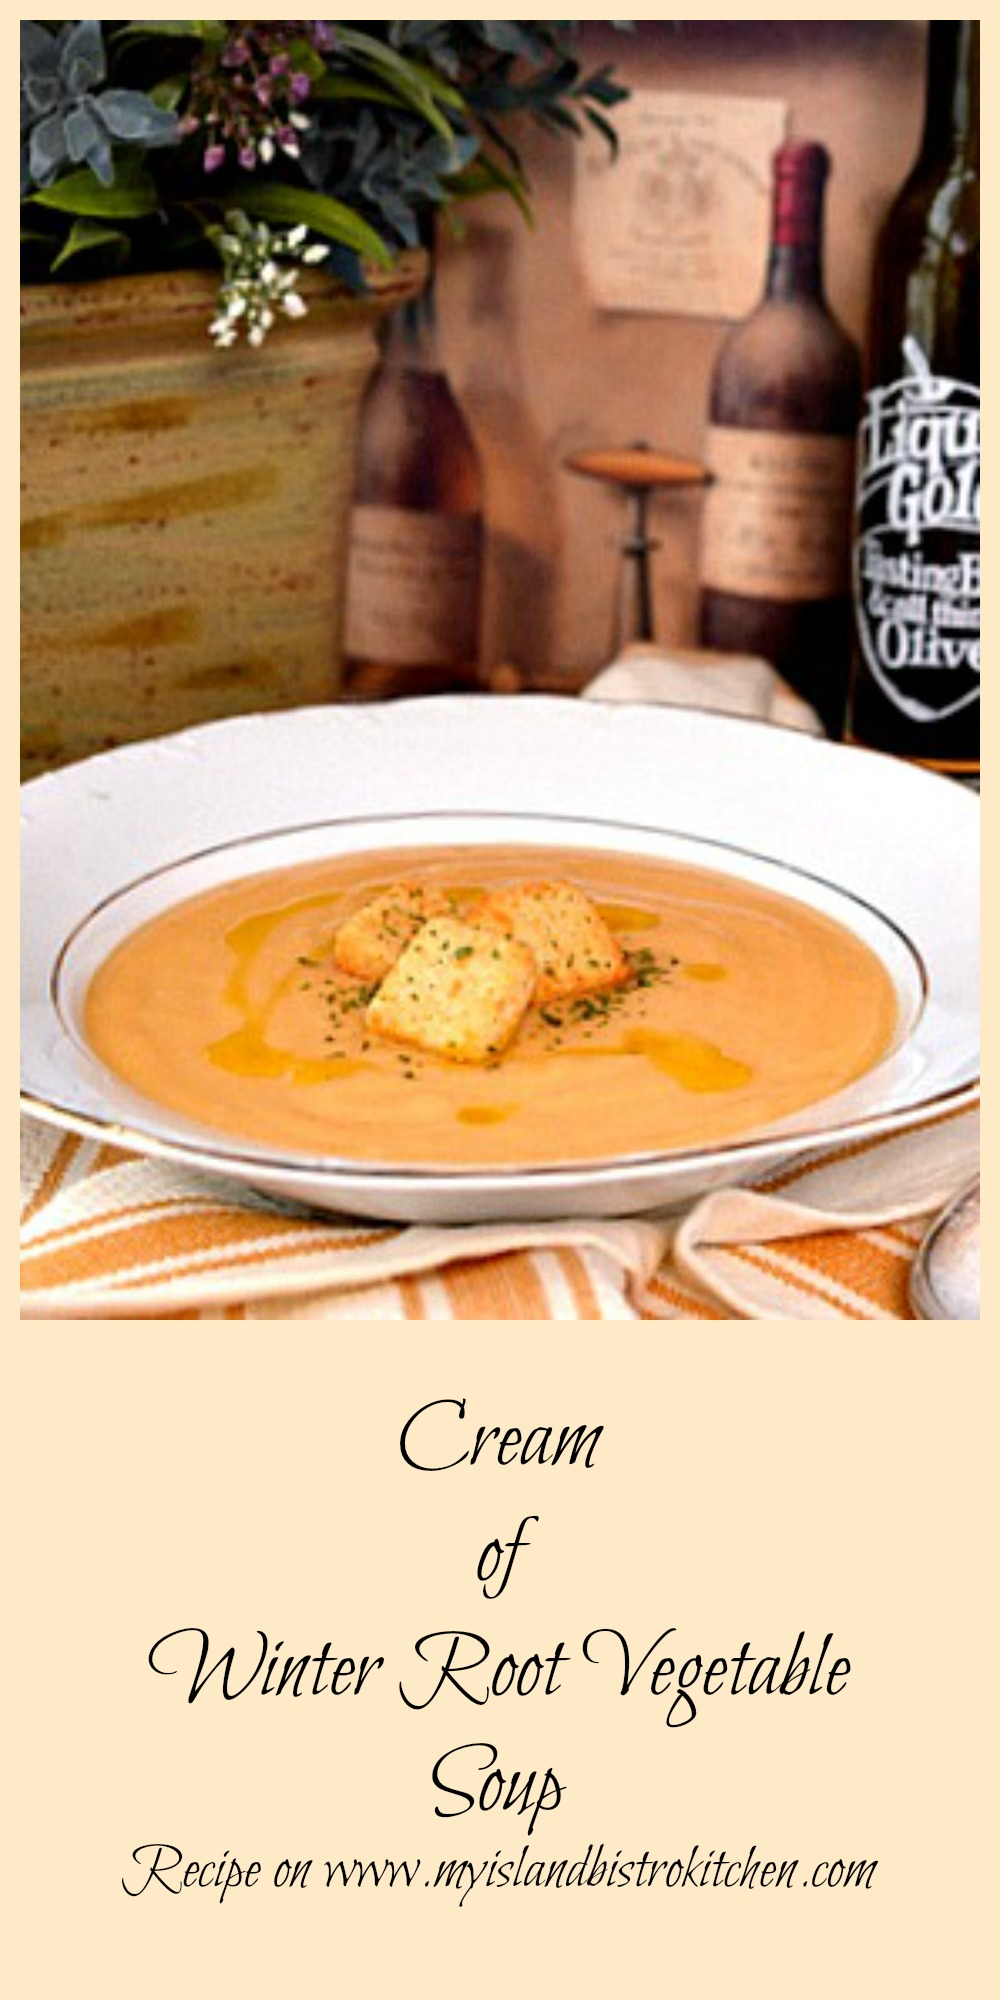 Cream of Winter Root Vegetable Soup